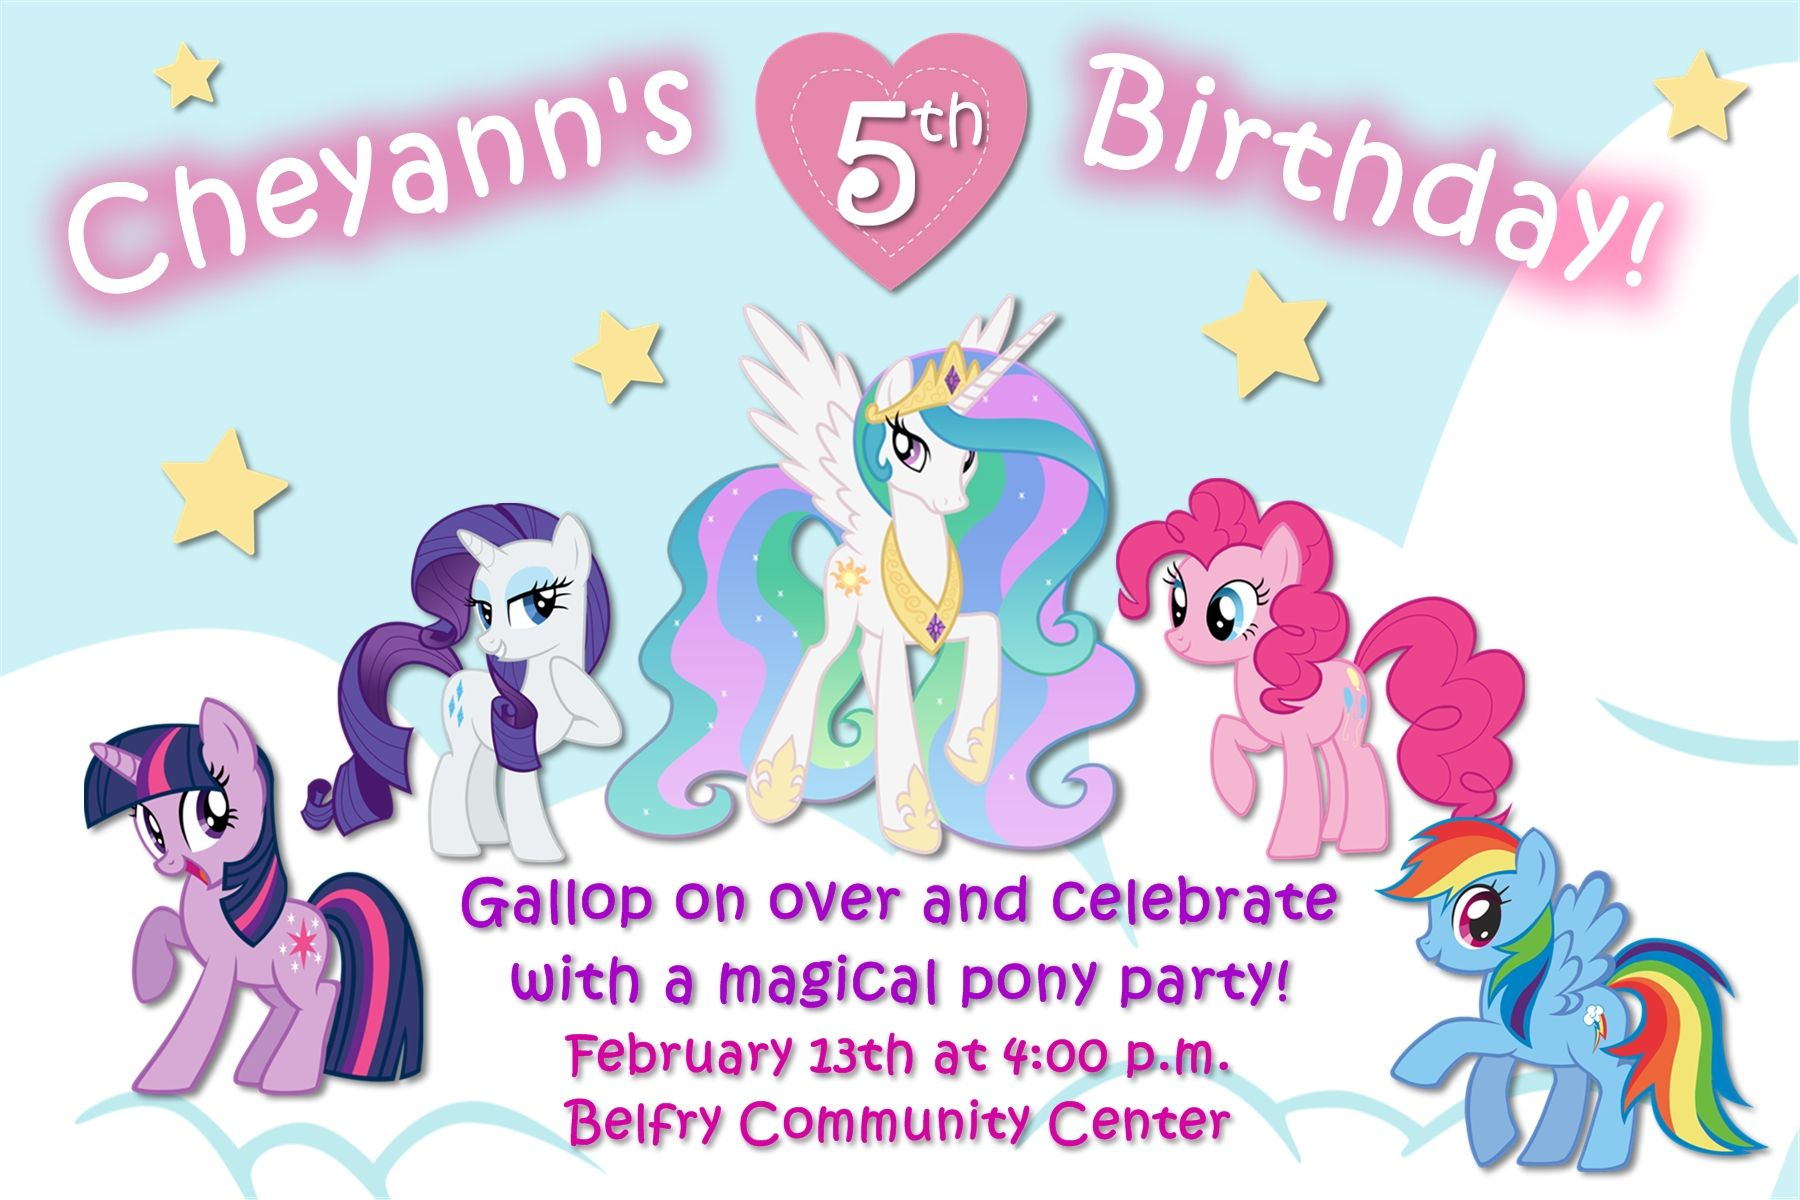 4x6 my little pony birthday invitation contact me via email 4x6 my little pony birthday invitation contact me via email aswiney01yahoo or stopboris